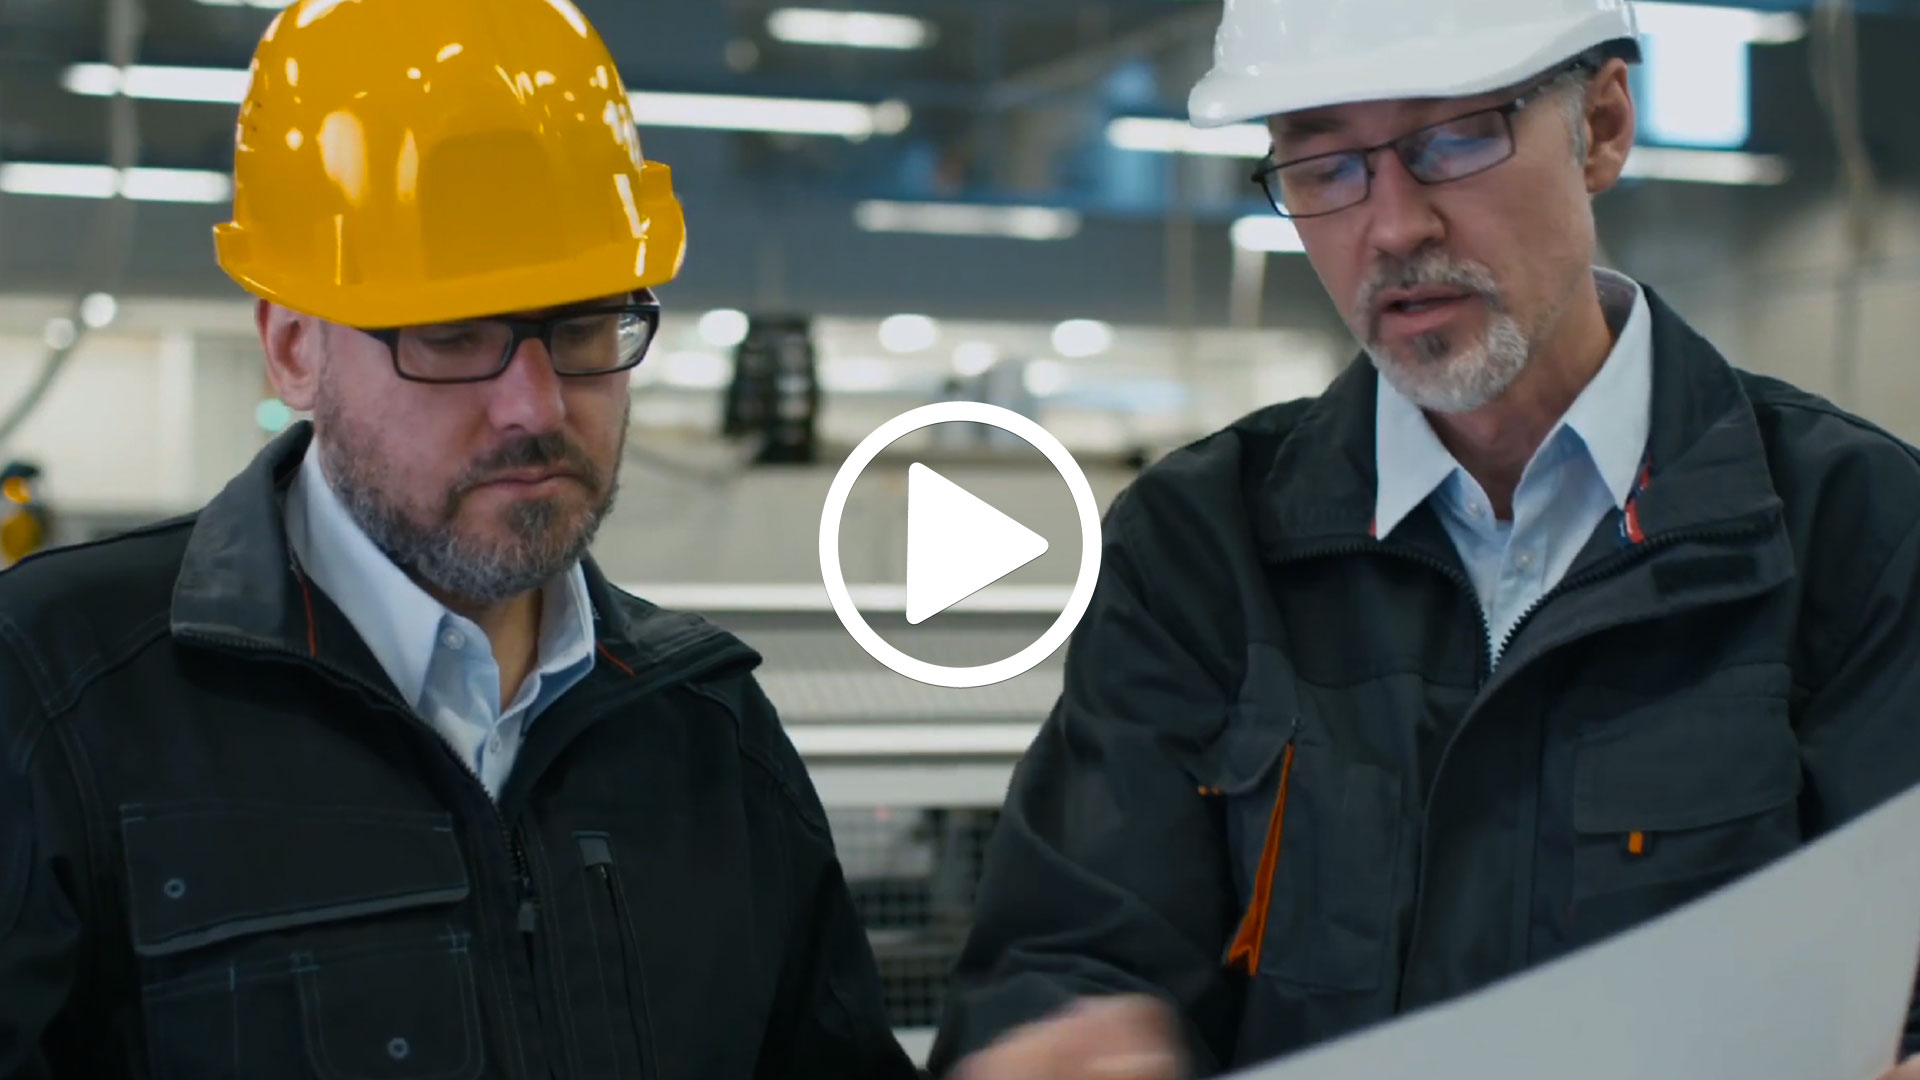 Watch our careers video for available job opening Field Support Representative in Richmond, VA